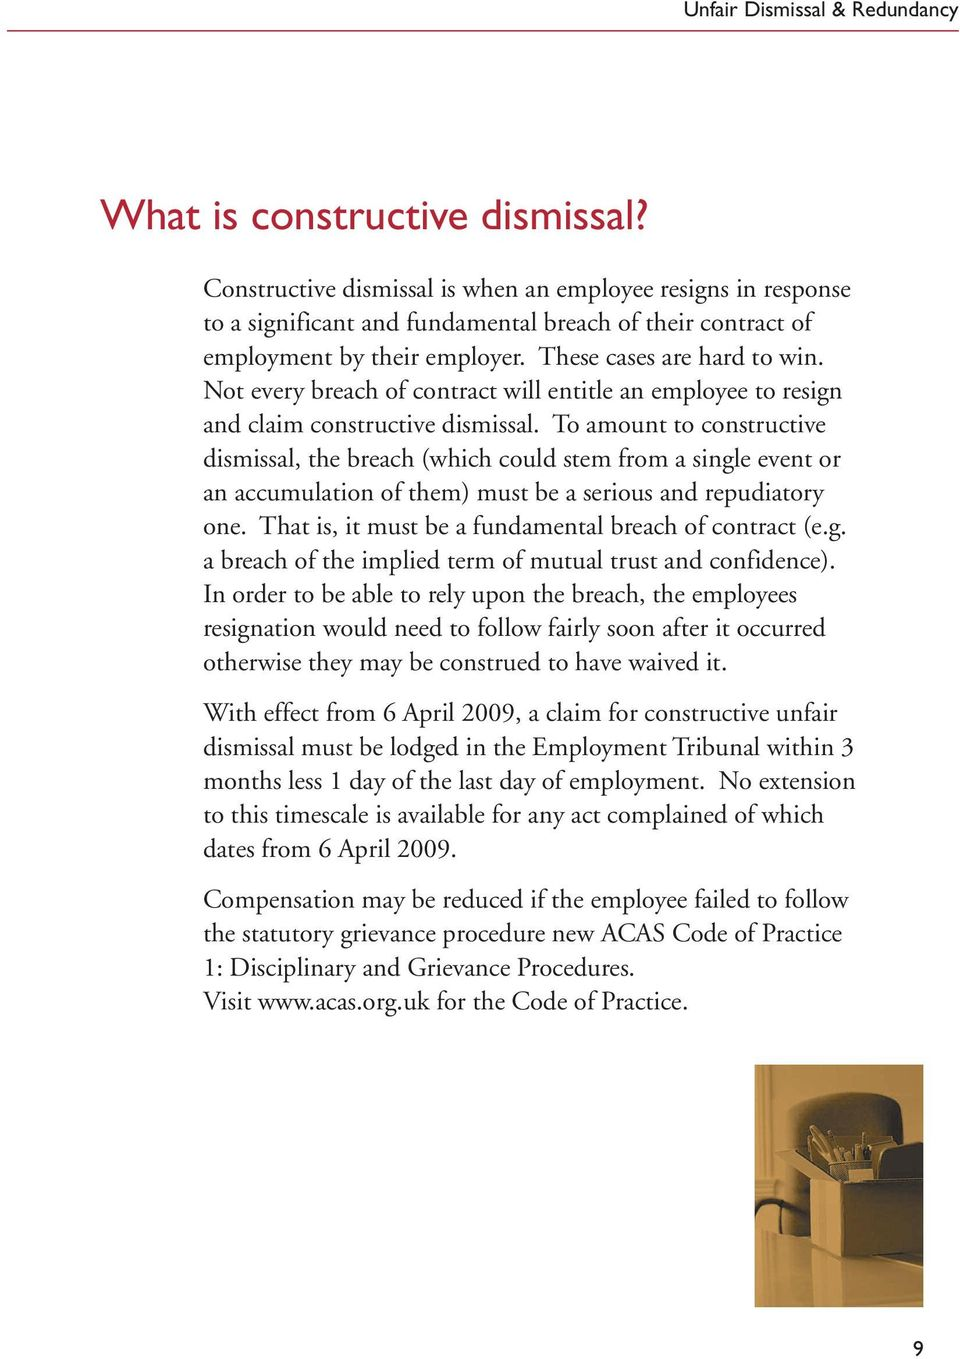 To amount to constructive dismissal, the breach (which could stem from a single event or an accumulation of them) must be a serious and repudiatory one.